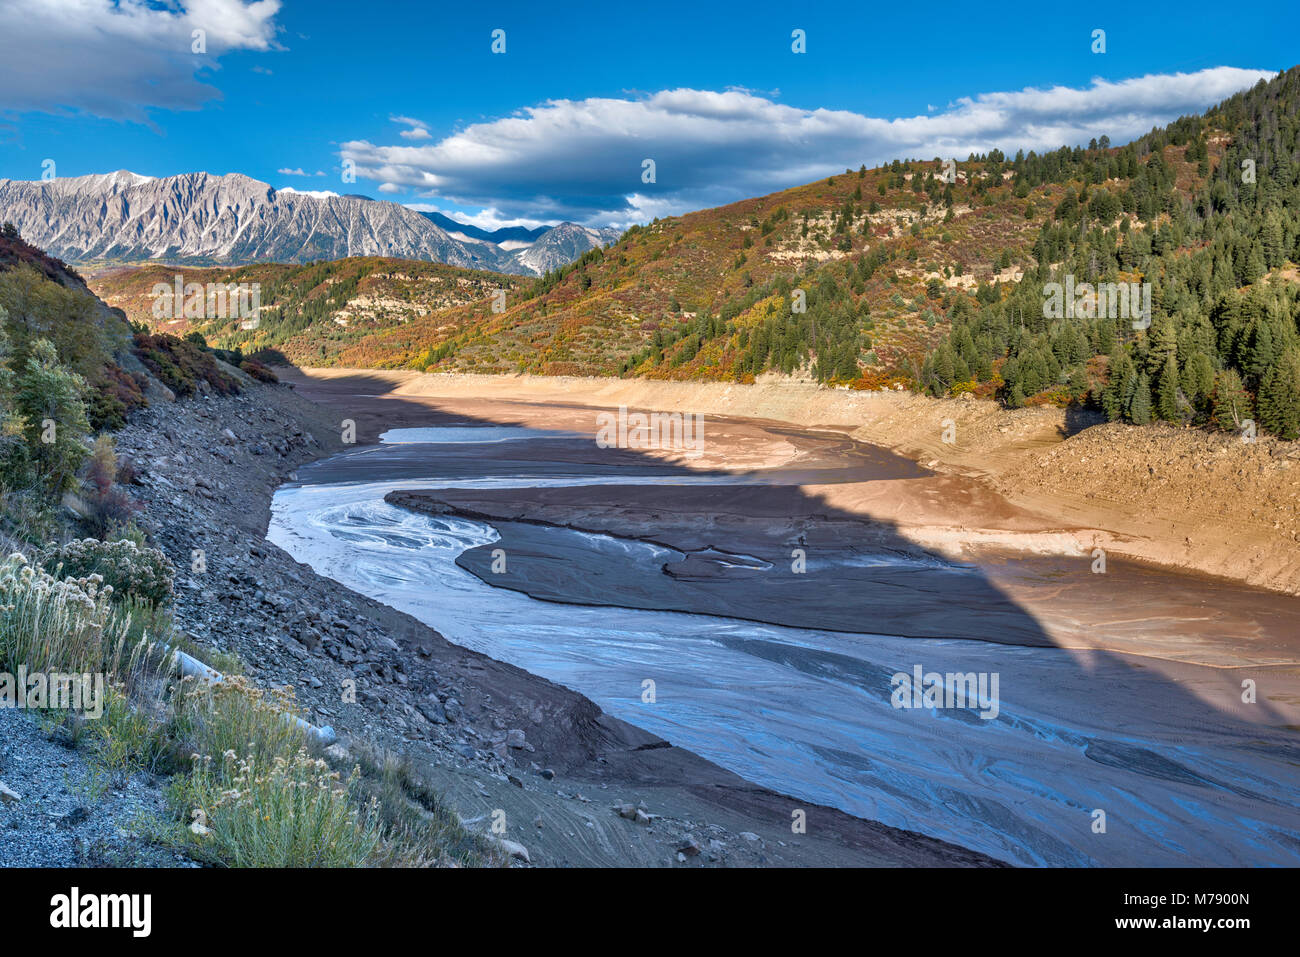 Drained Paonia Reservoir, on Muddy Creek in October 2013, extremely low water levels due to draught, West Elk Mountains, - Stock Image